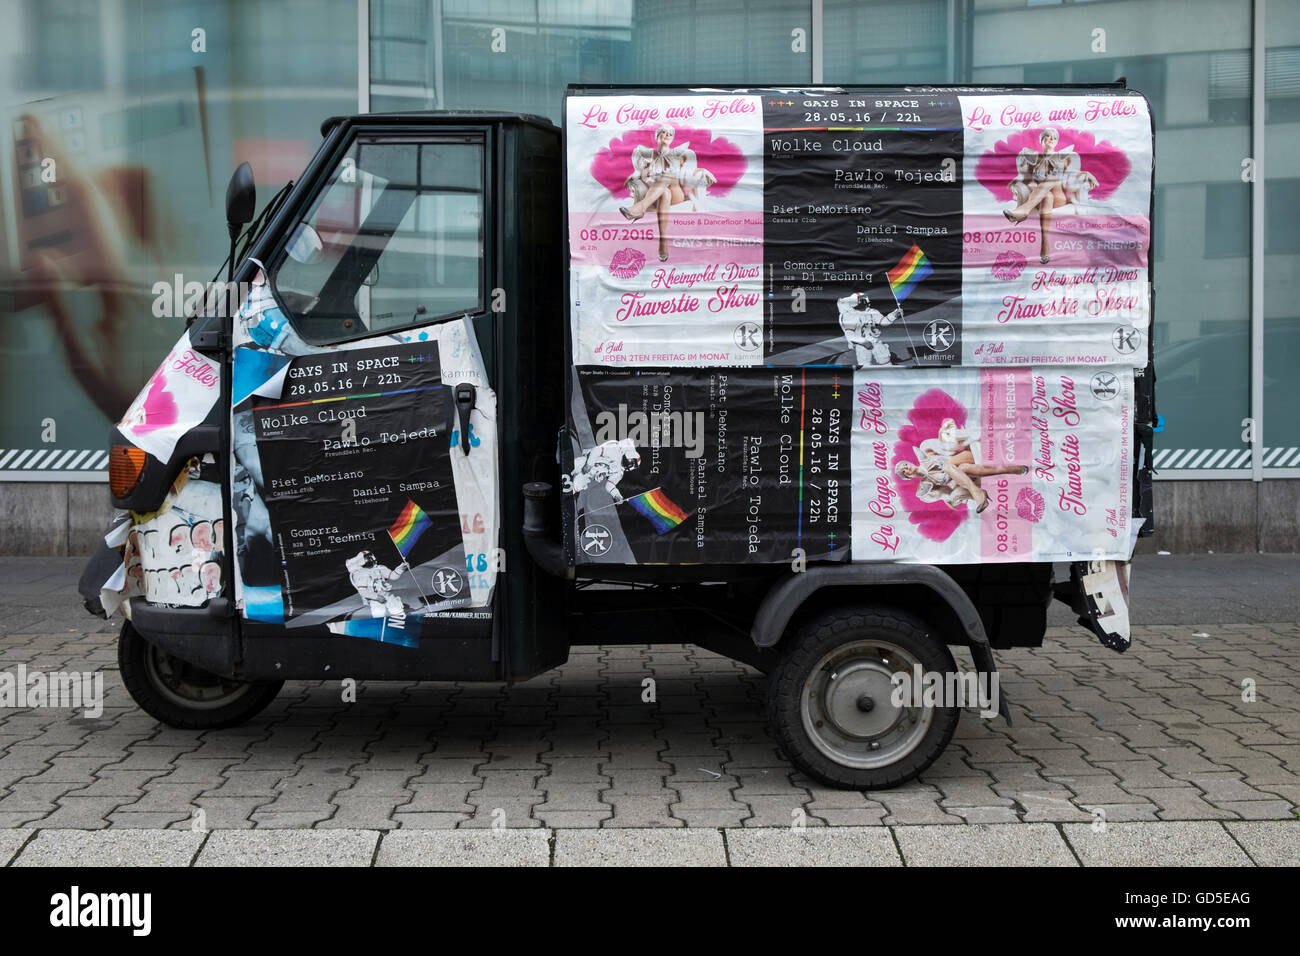 Three-Wheeled commercial delivery van covered in flyers advertising Gay nightclubs and events, Dusseldorf, Germany, - Stock Image